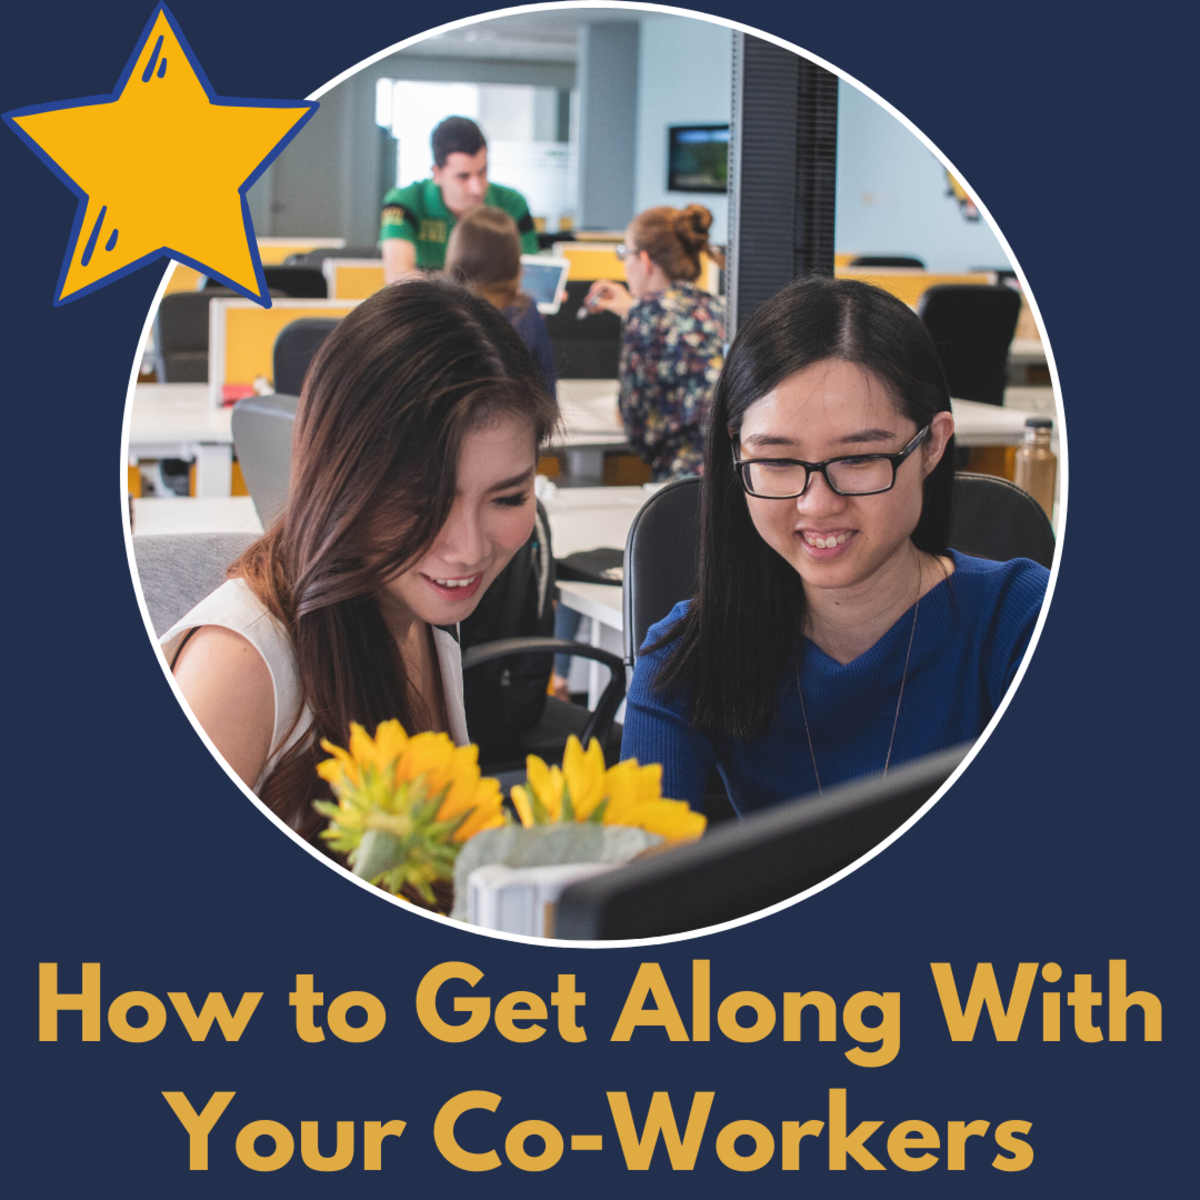 Learn how to get along with your coworkers and create a better business.